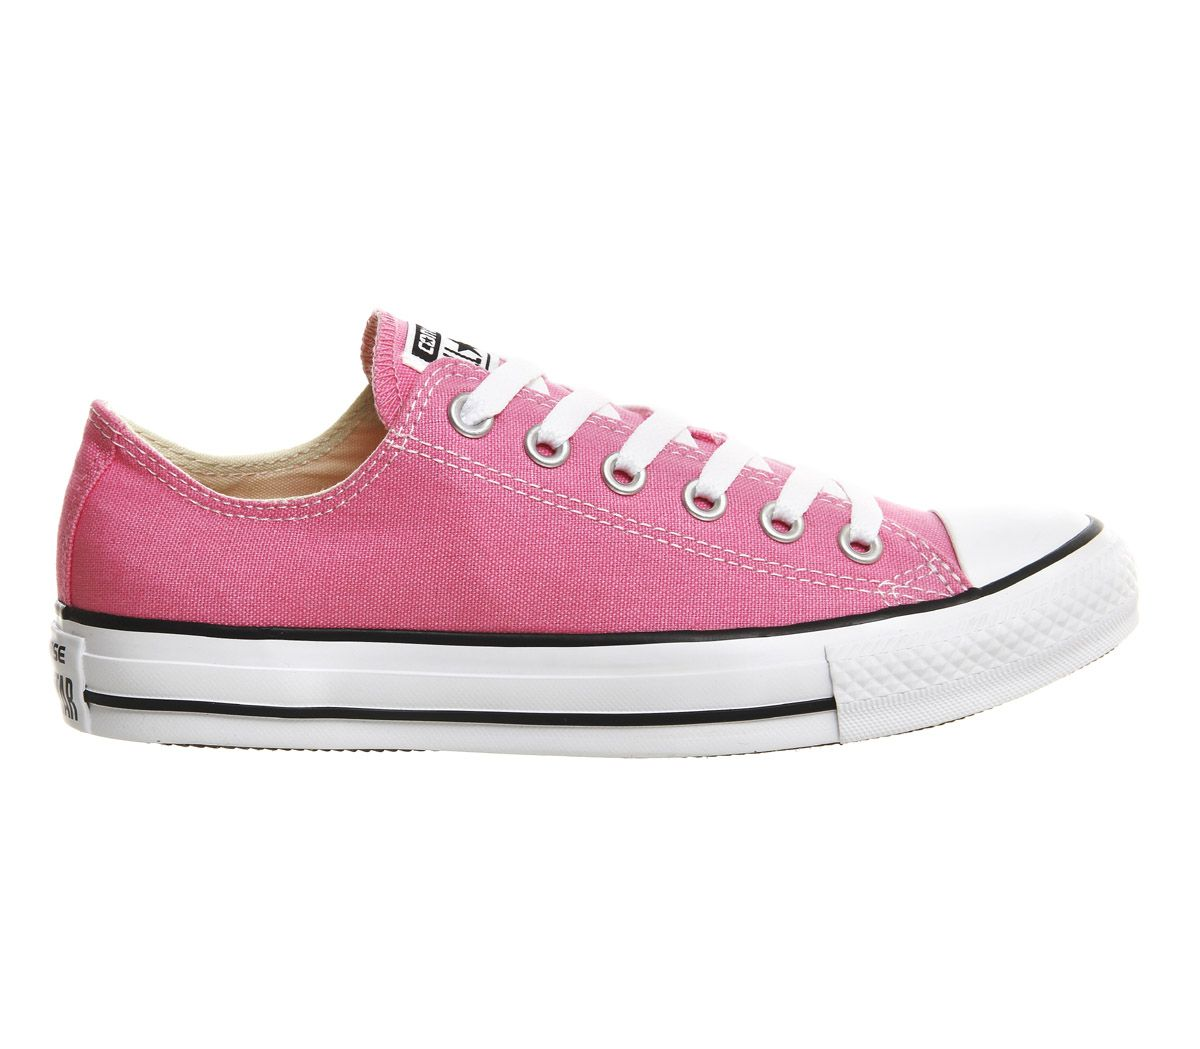 c0850a80198e Sentinel Womens Converse All Star Low Pink Canvas Trainers Shoes